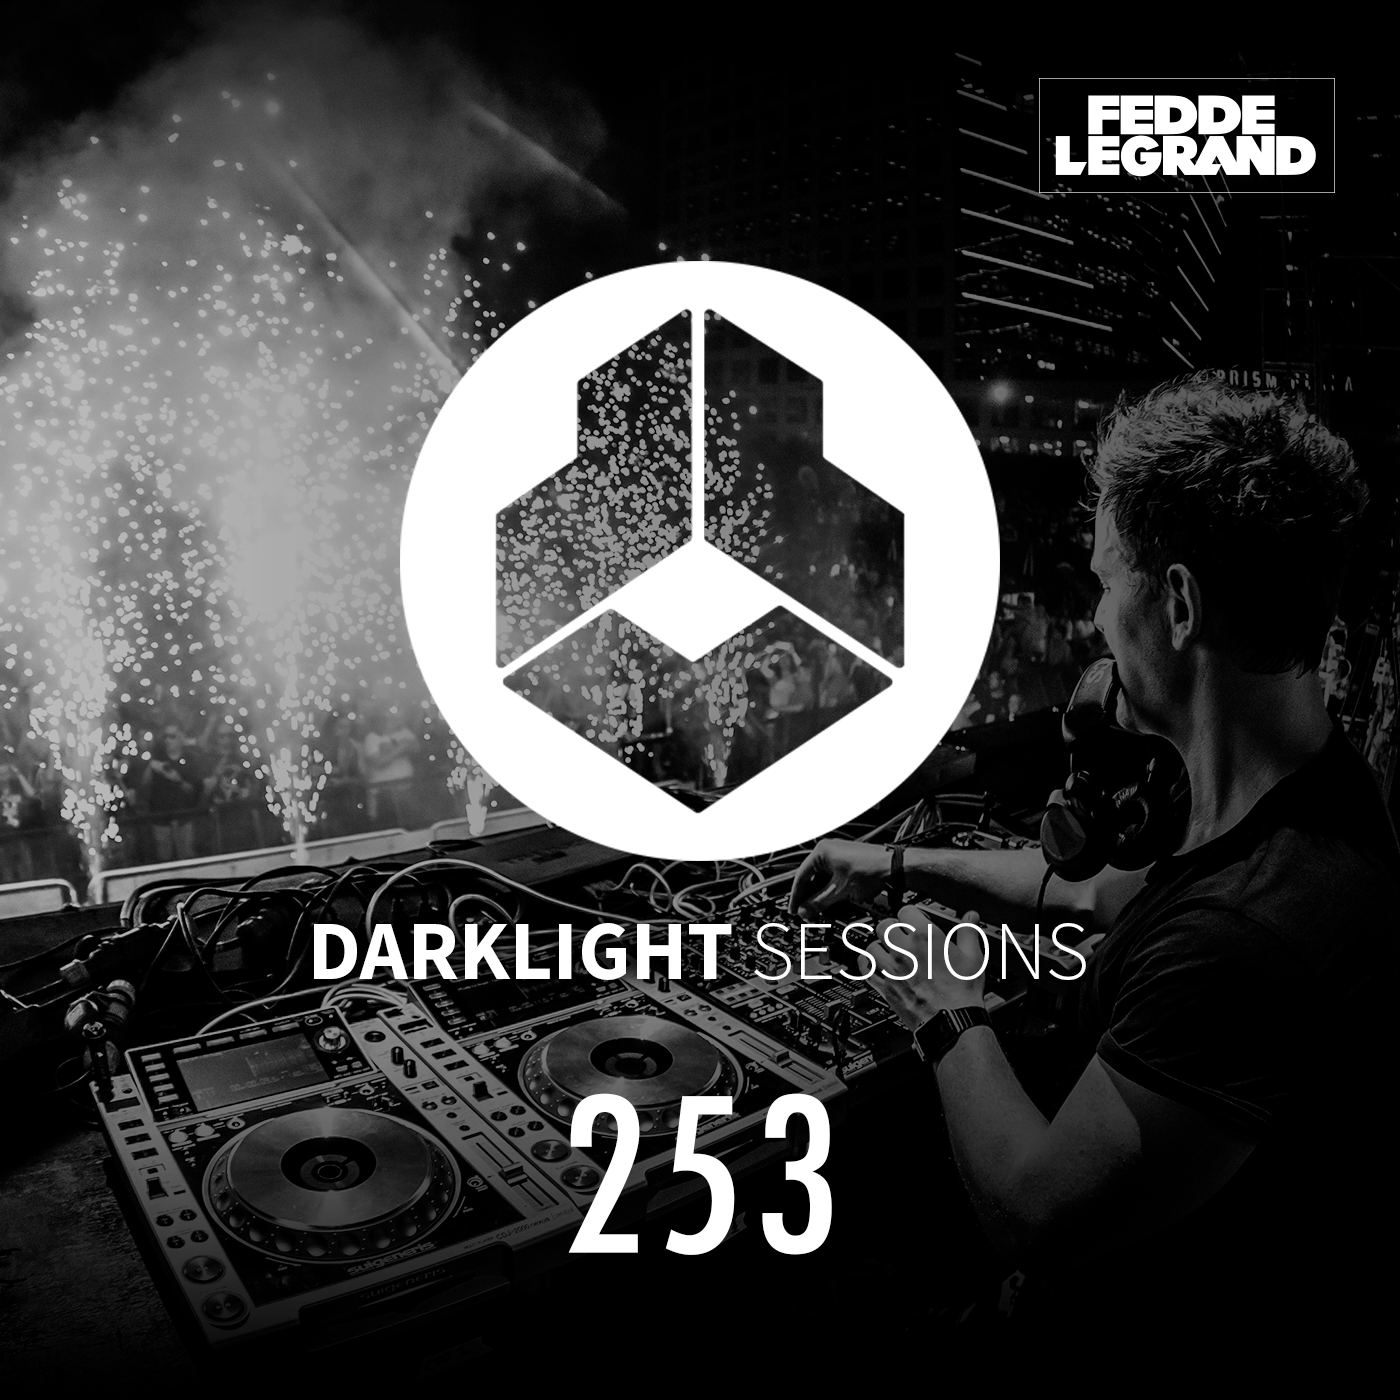 Darklight Sessions 253